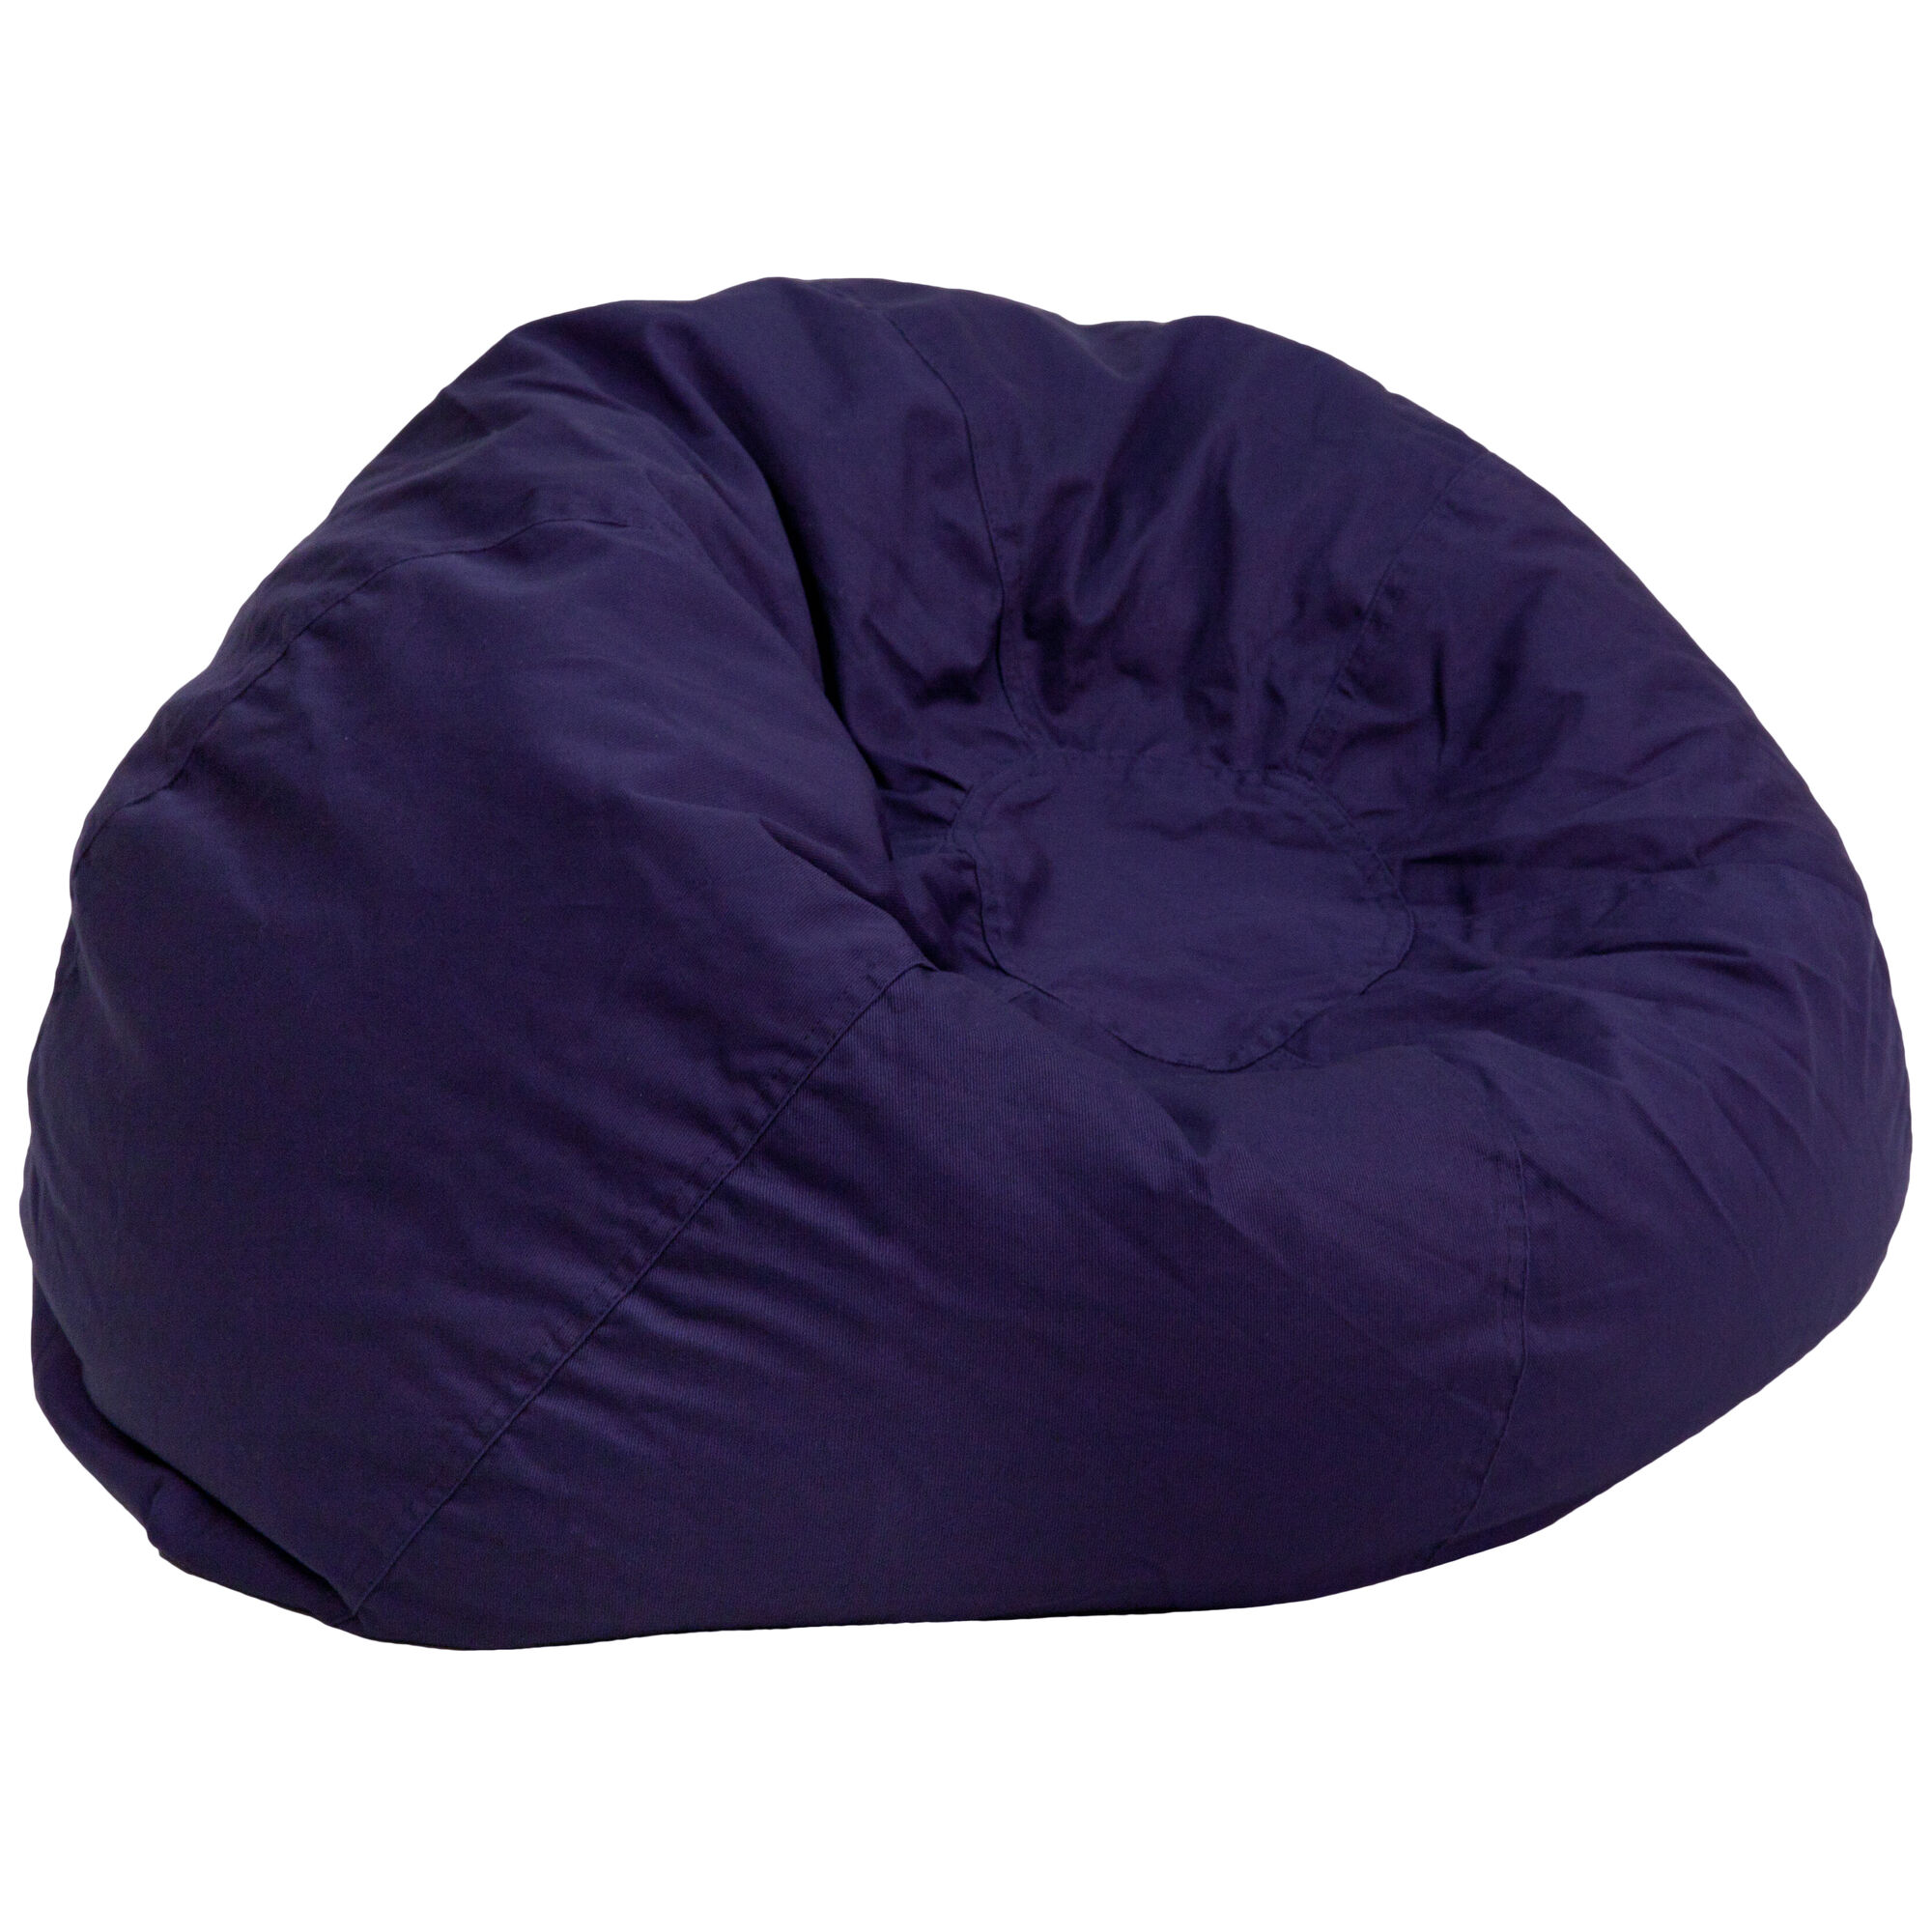 Phenomenal Oversized Solid Navy Blue Bean Bag Chair For Kids And Adults Caraccident5 Cool Chair Designs And Ideas Caraccident5Info